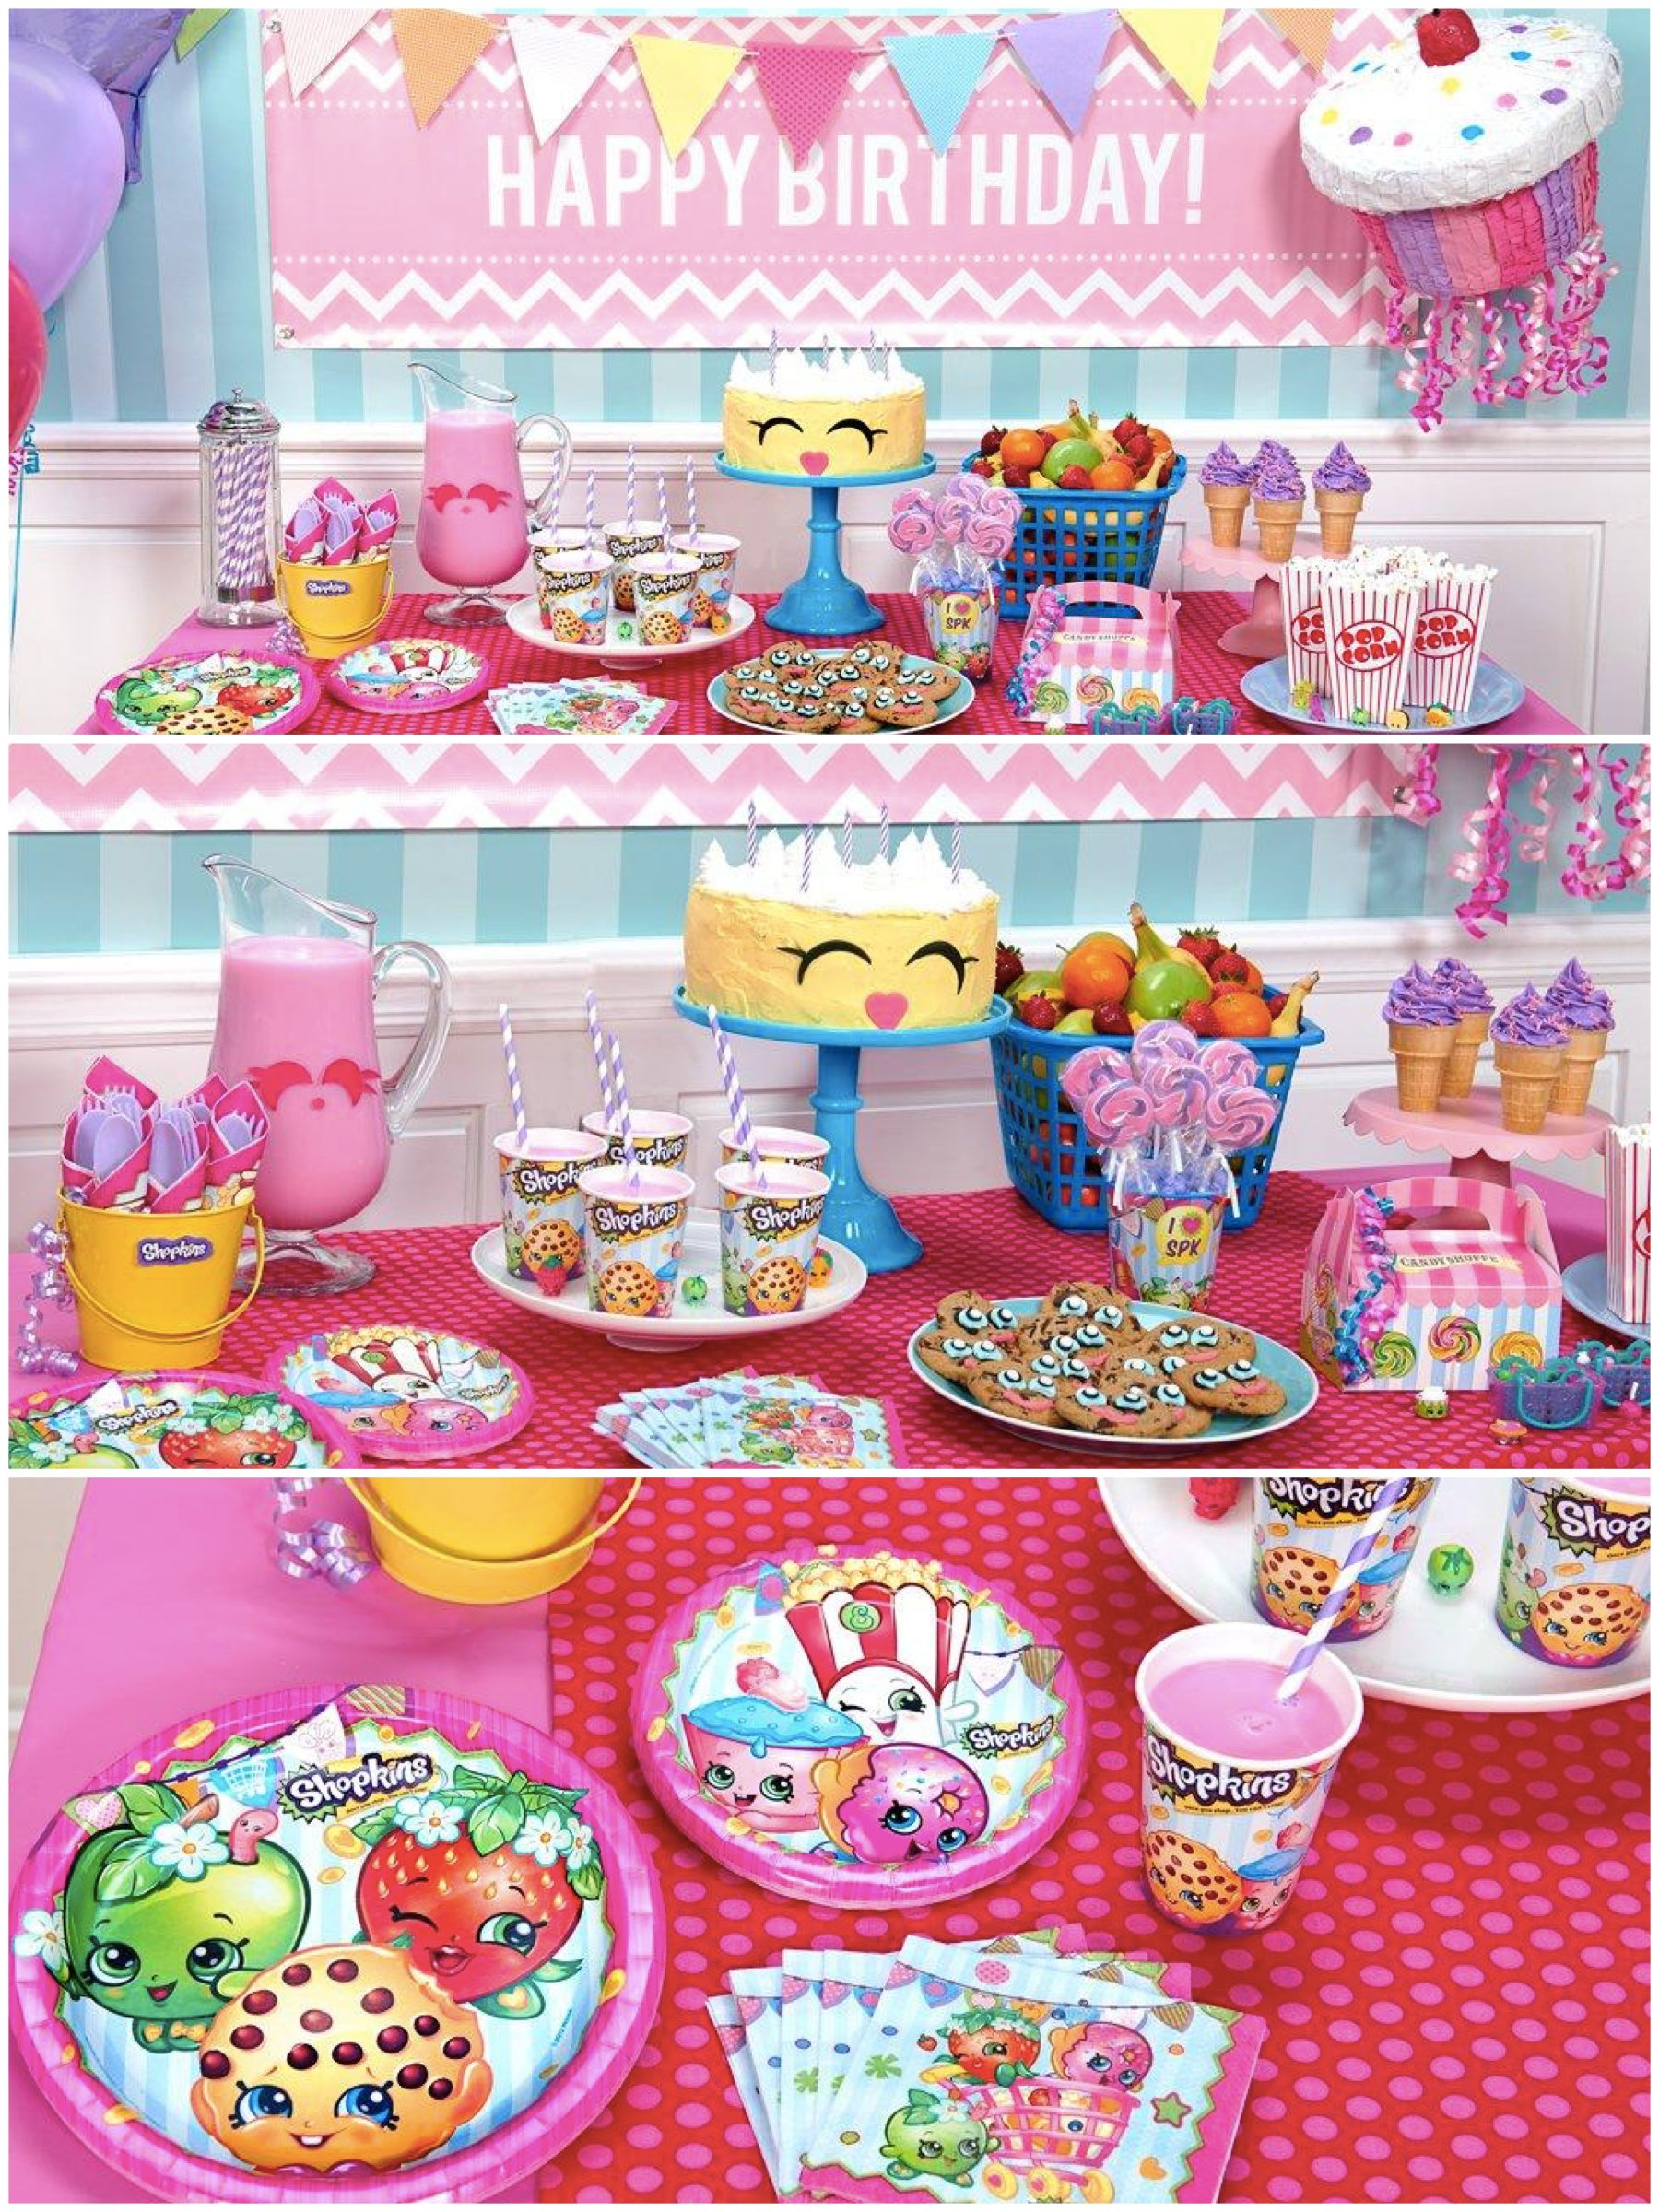 Shopkins birthday party planning ideas supplies theme - Th birthday themes ideas ...